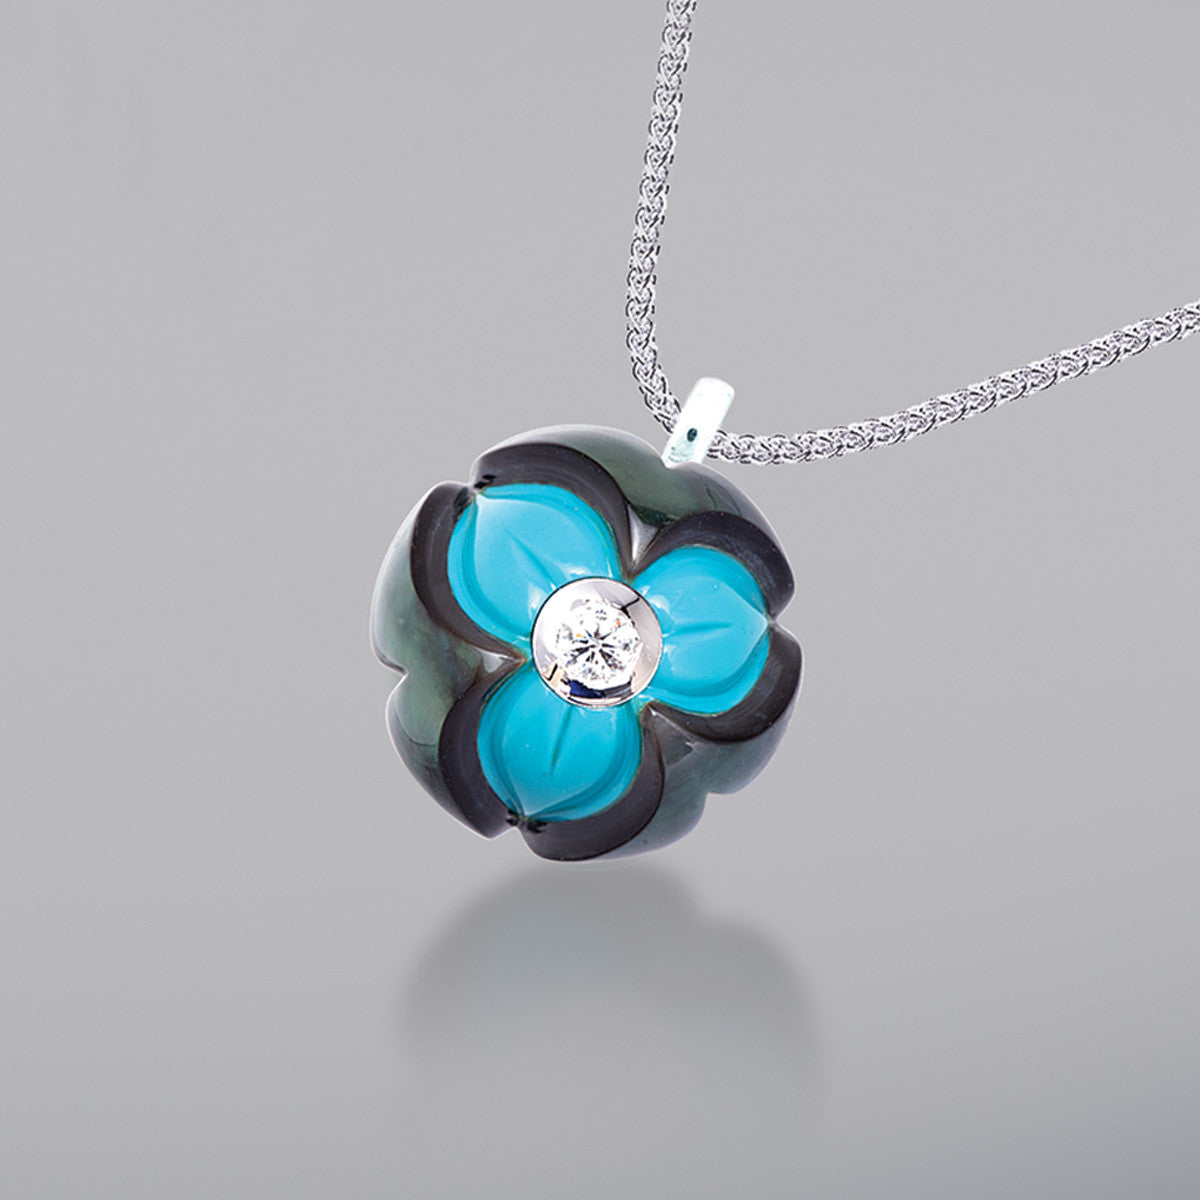 Black pearl over turquoise with diamond pendant wayne jason jewelry black pearl over turquoise with diamond pendant aloadofball Gallery